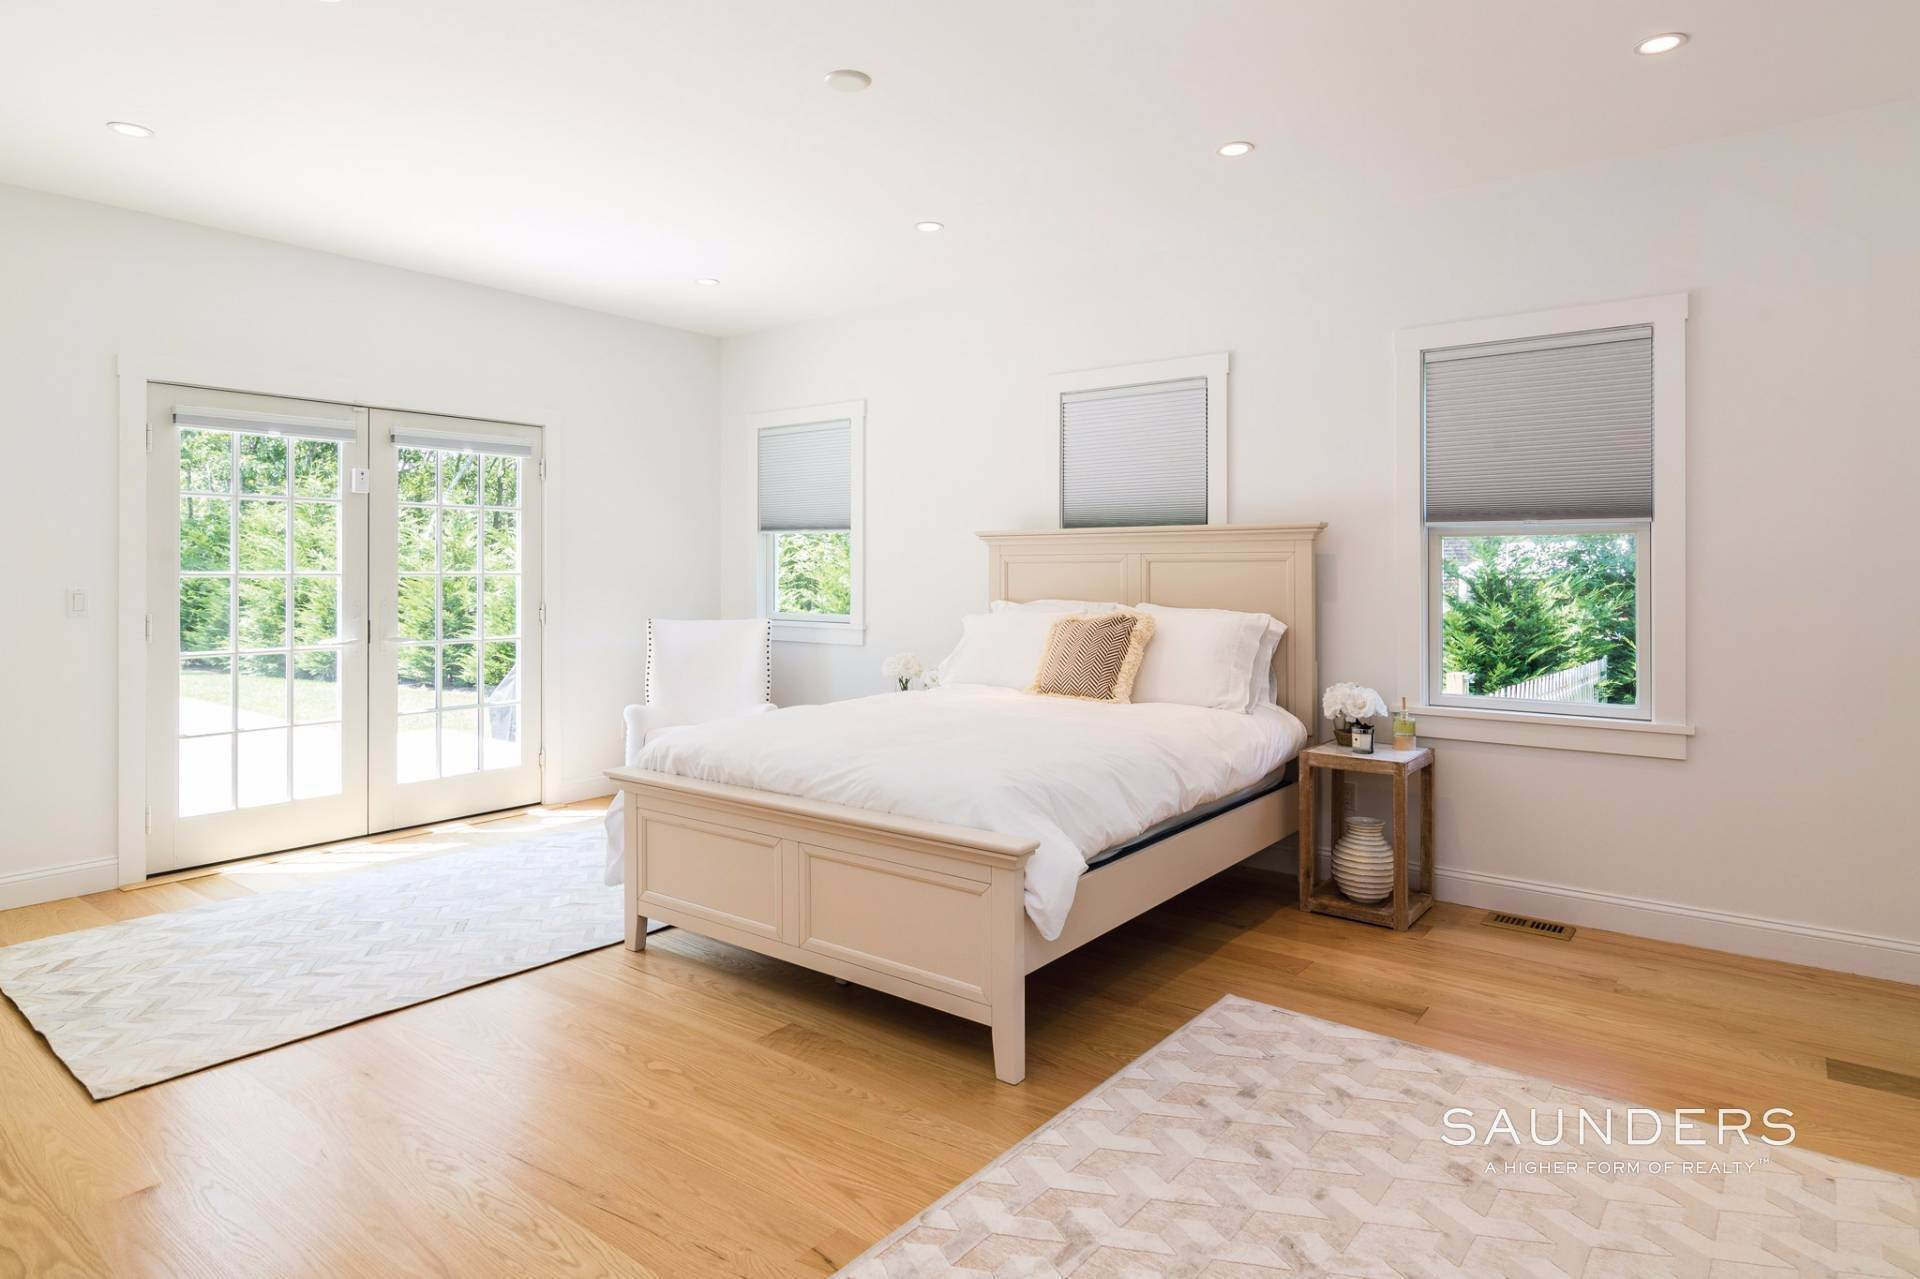 12. Single Family Homes for Sale at Pristine Traditional Home With Modern Amenities 11 Birdie Lane, East Hampton, East Hampton Town, NY 11937